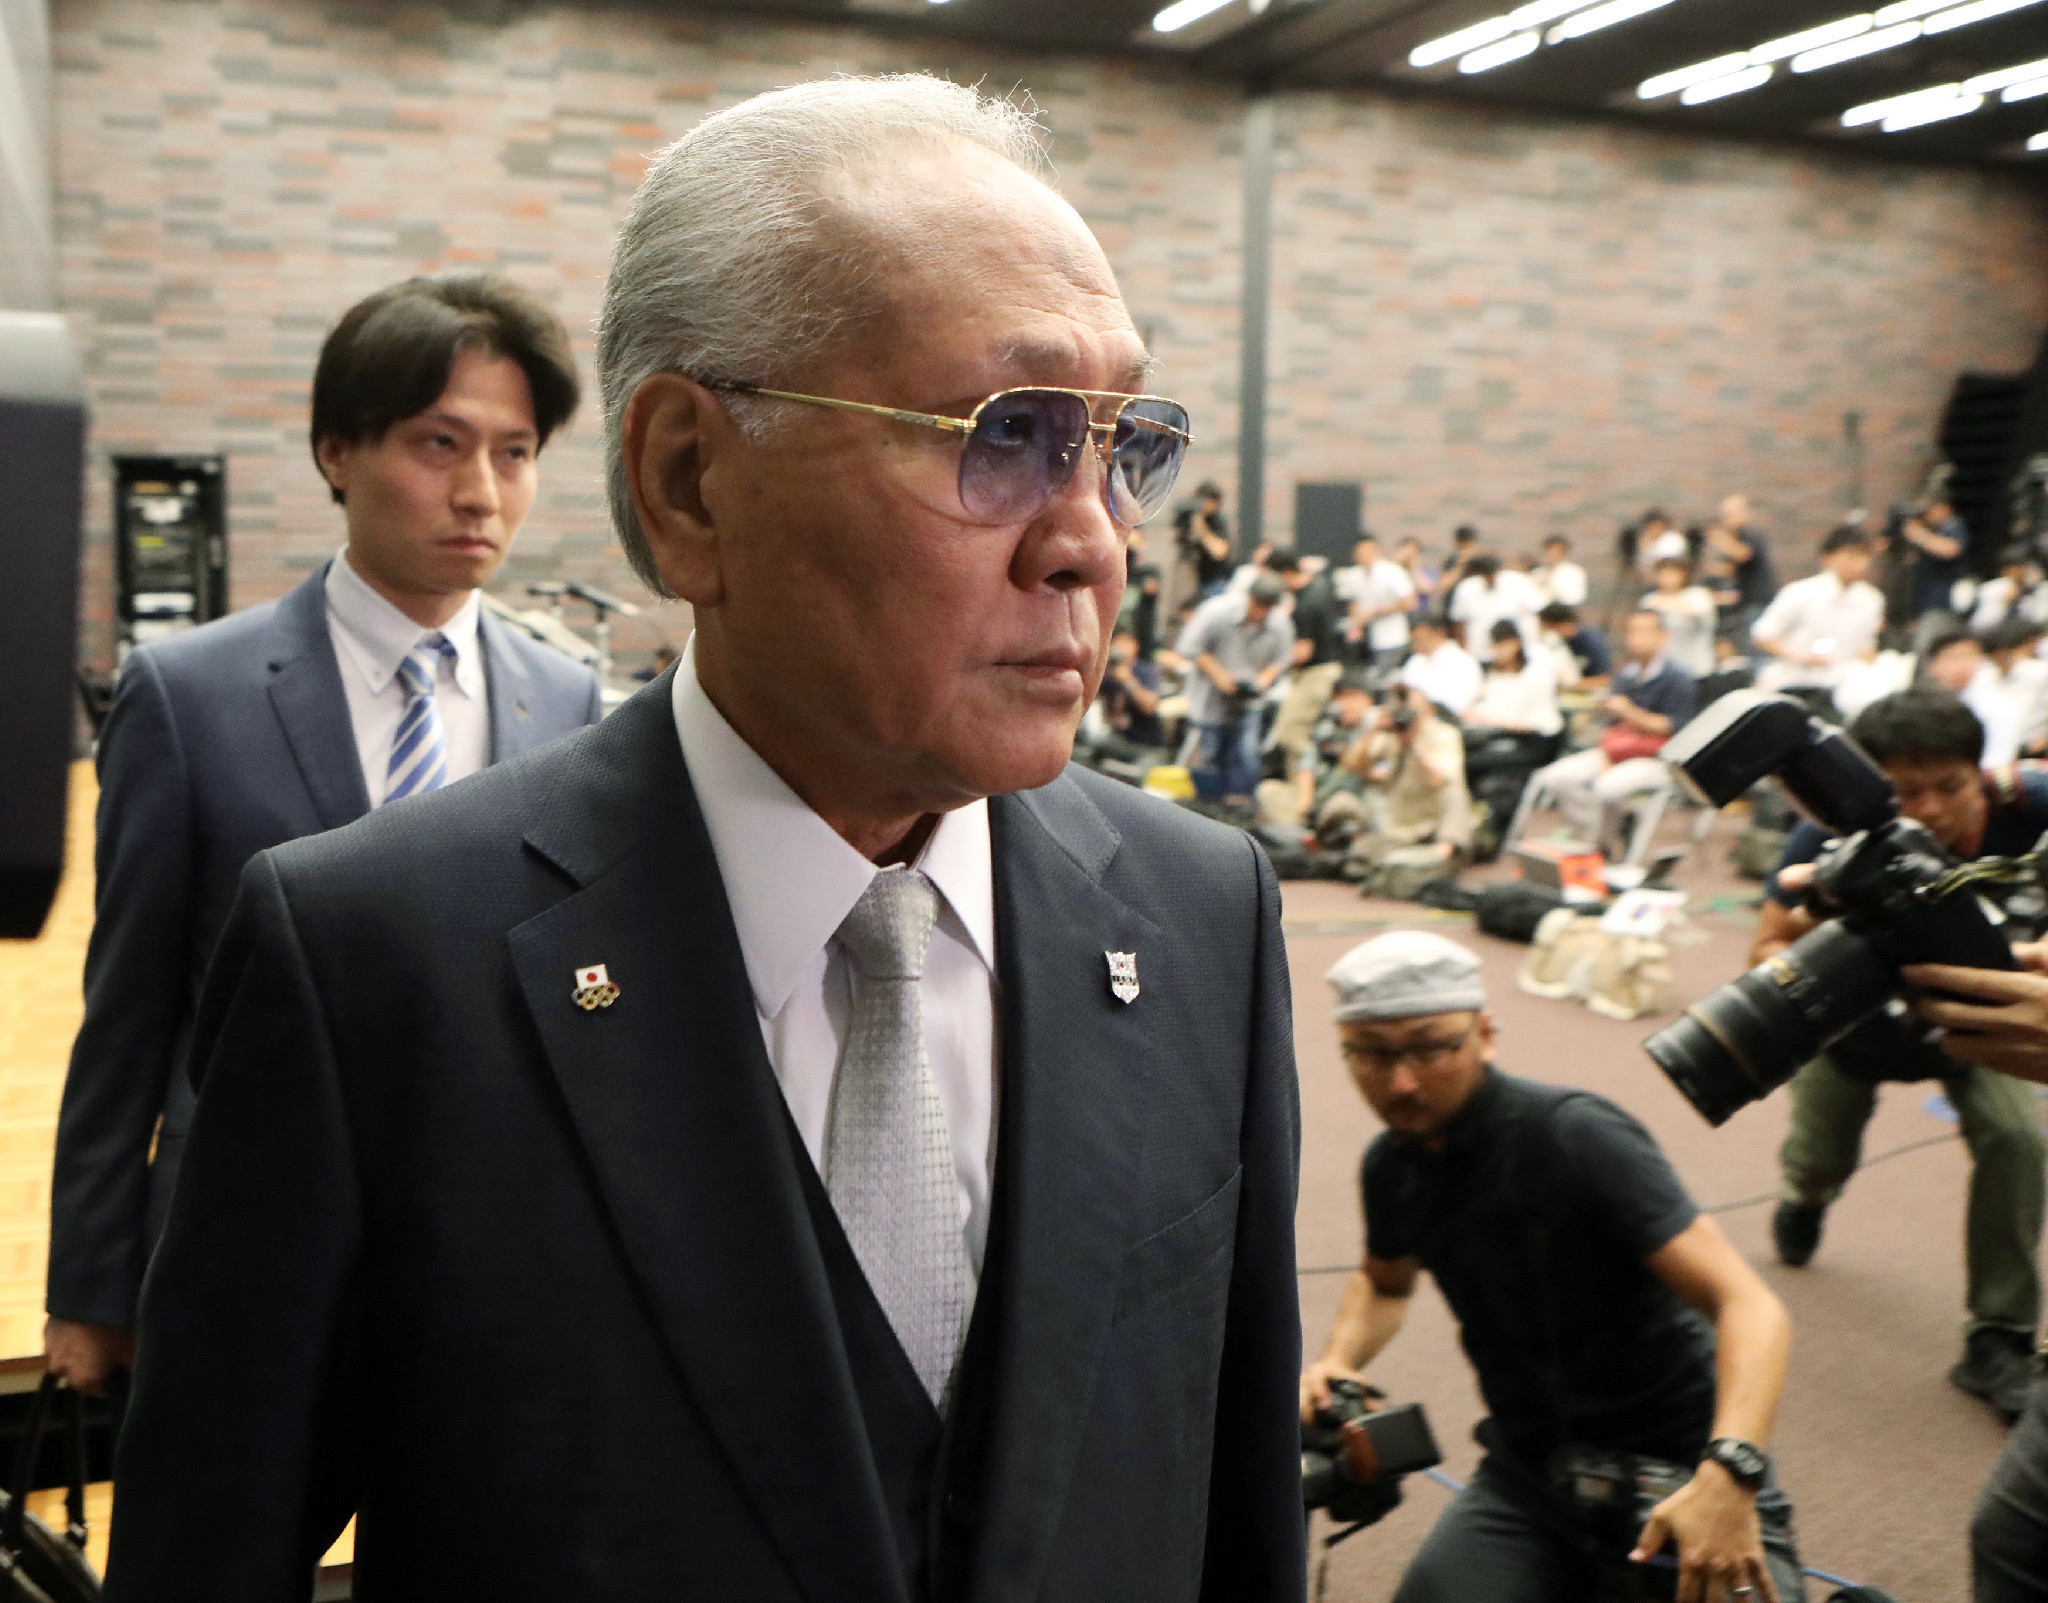 Japan Amateur Boxing Federation President resigns as allegations of misconduct mount